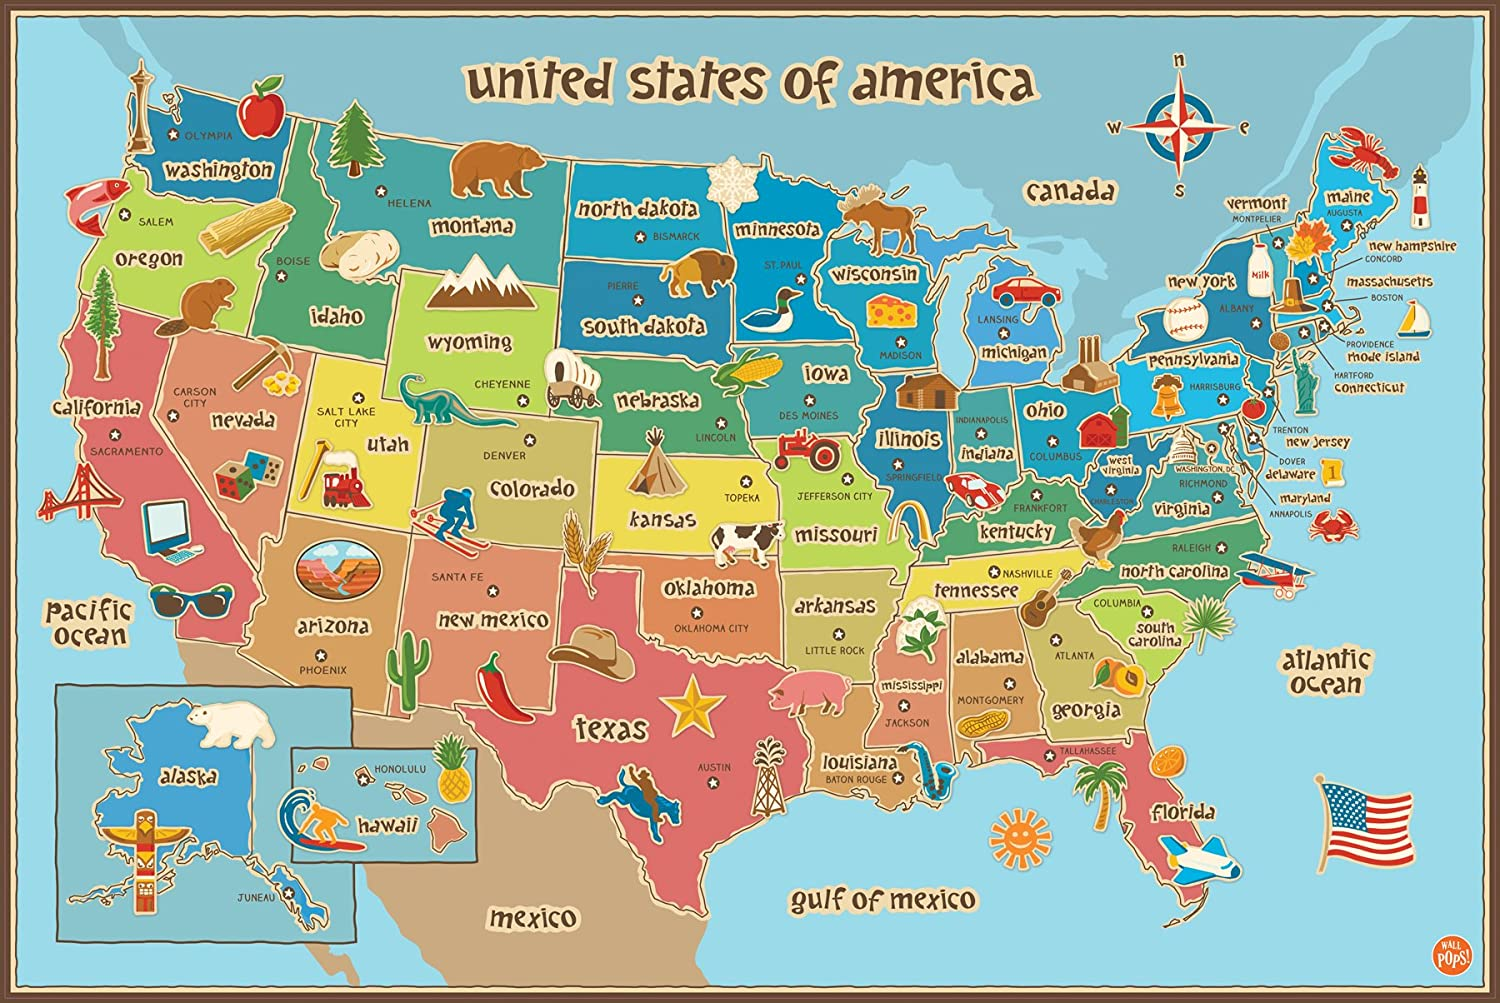 US Maps USA State Maps Maps Of Continents Maps Usa Map Chicago - Map of us during 1500